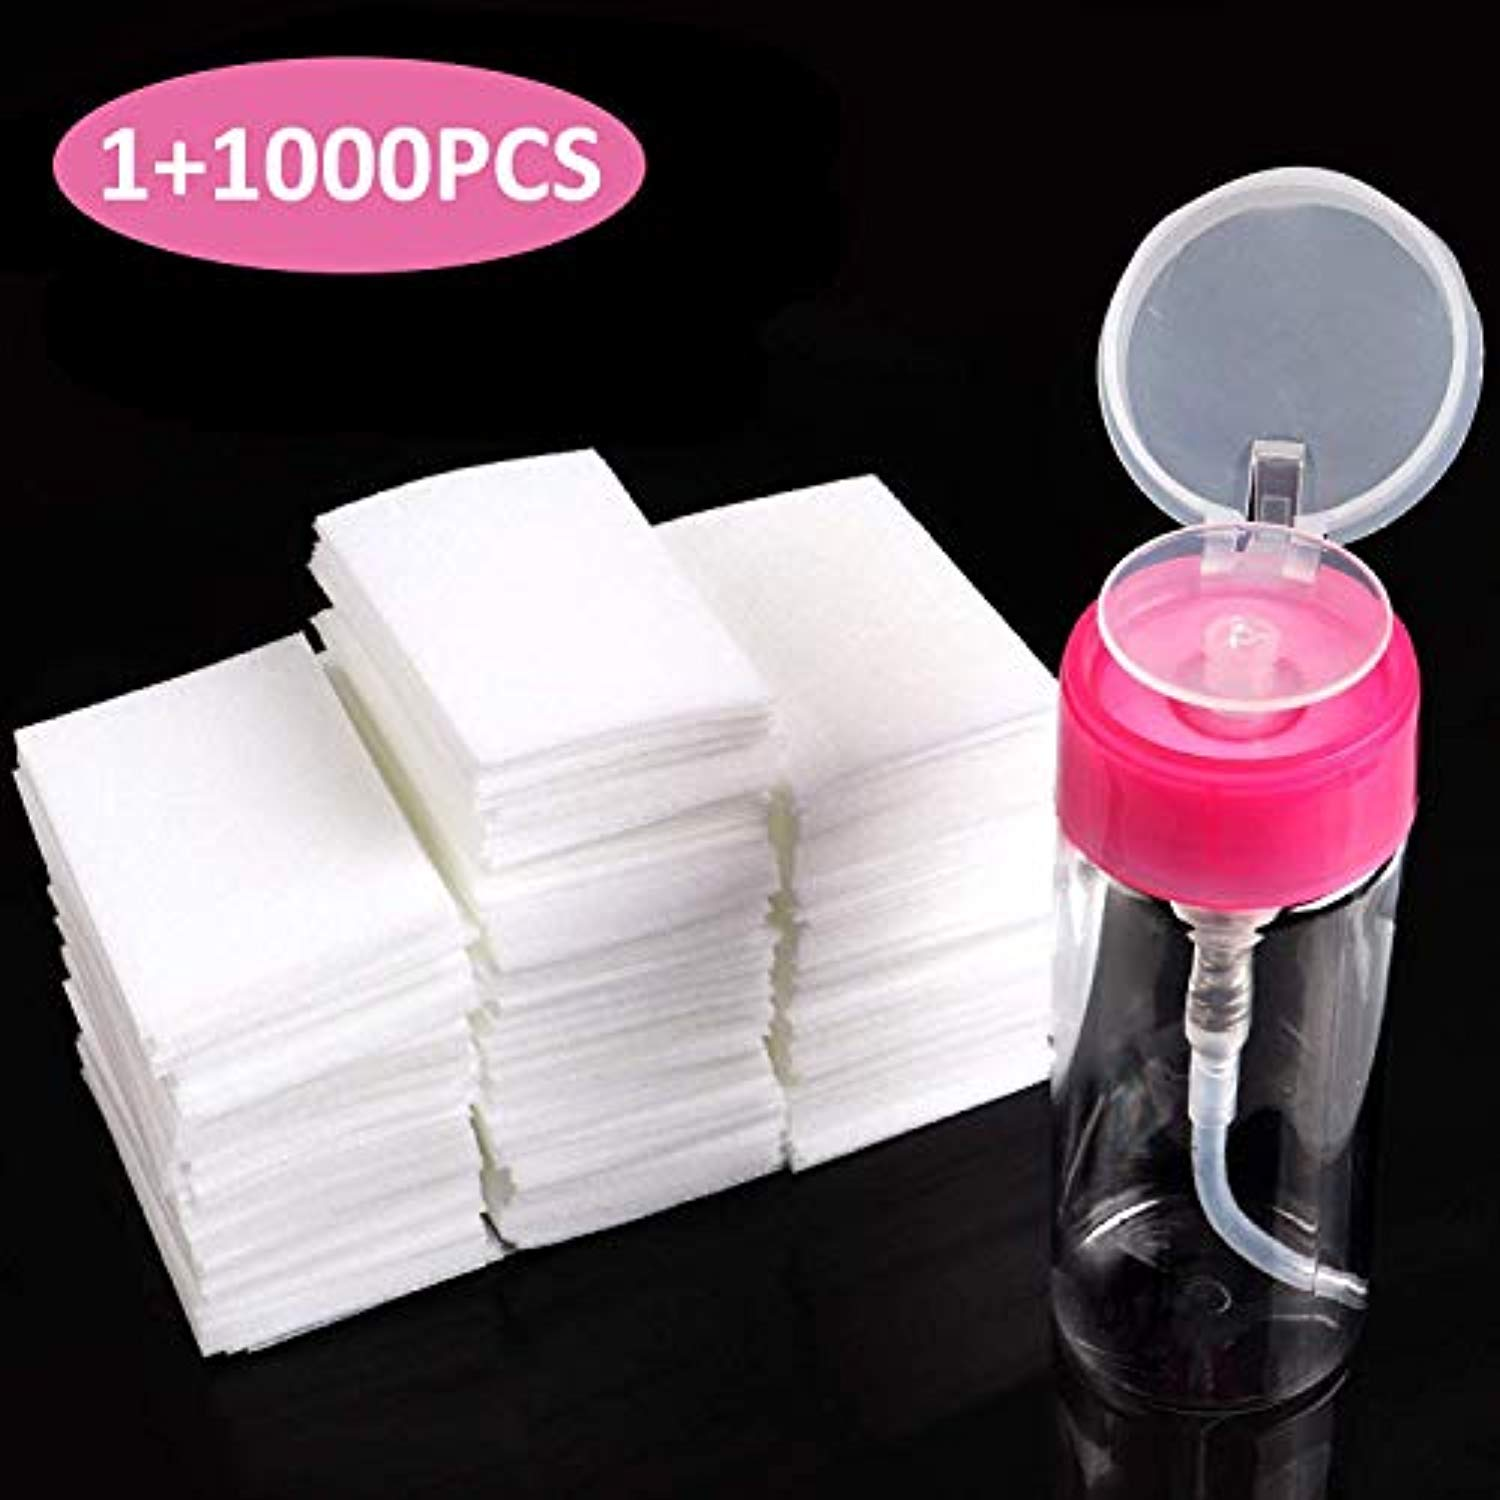 Remover Pad & Pump Dispenser Bottle for Soak Off Gel (1,000pcs pads)